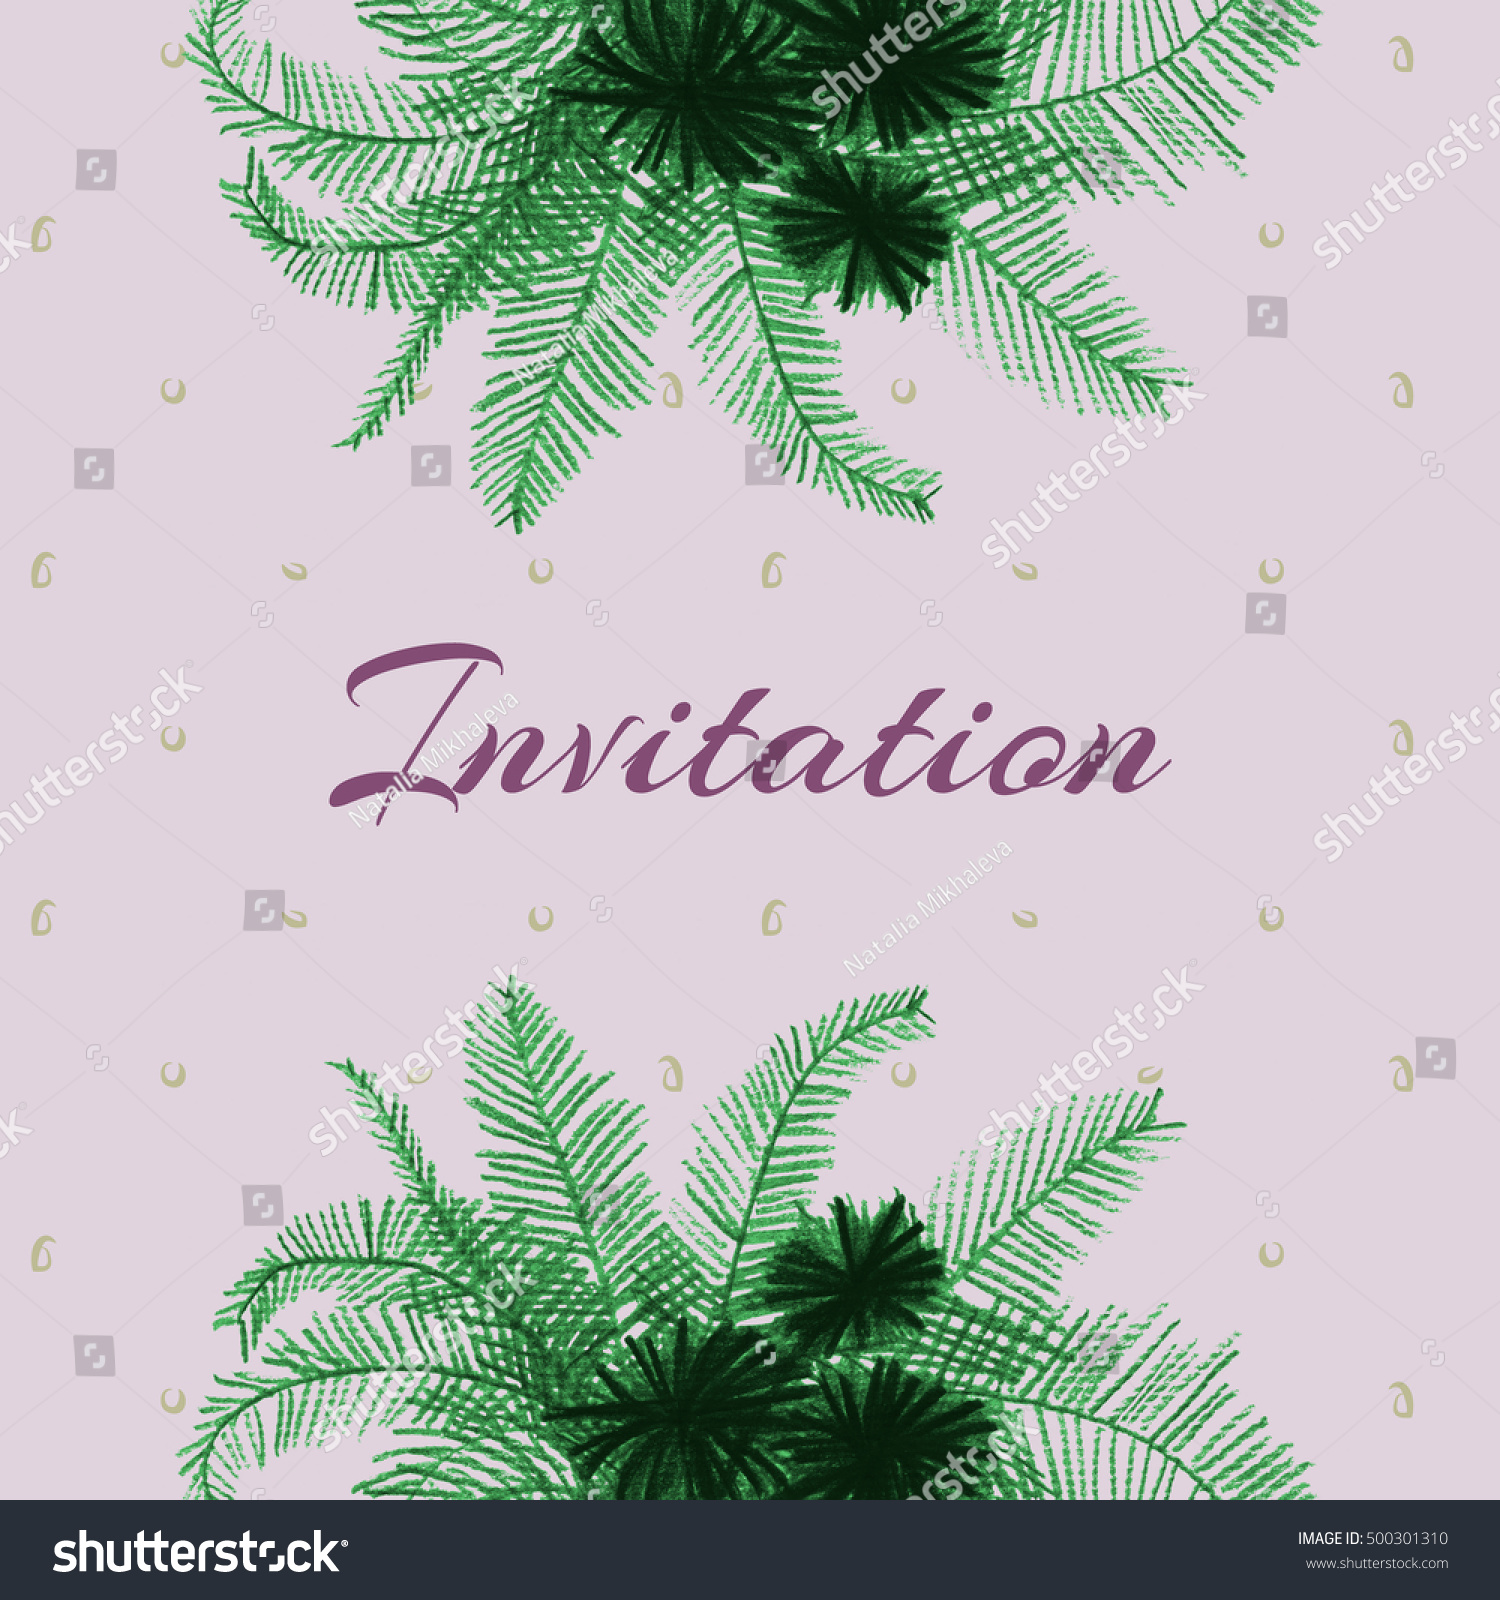 Invitation Featuring Colored Pencil Drawing Palm Stock Illustration ...